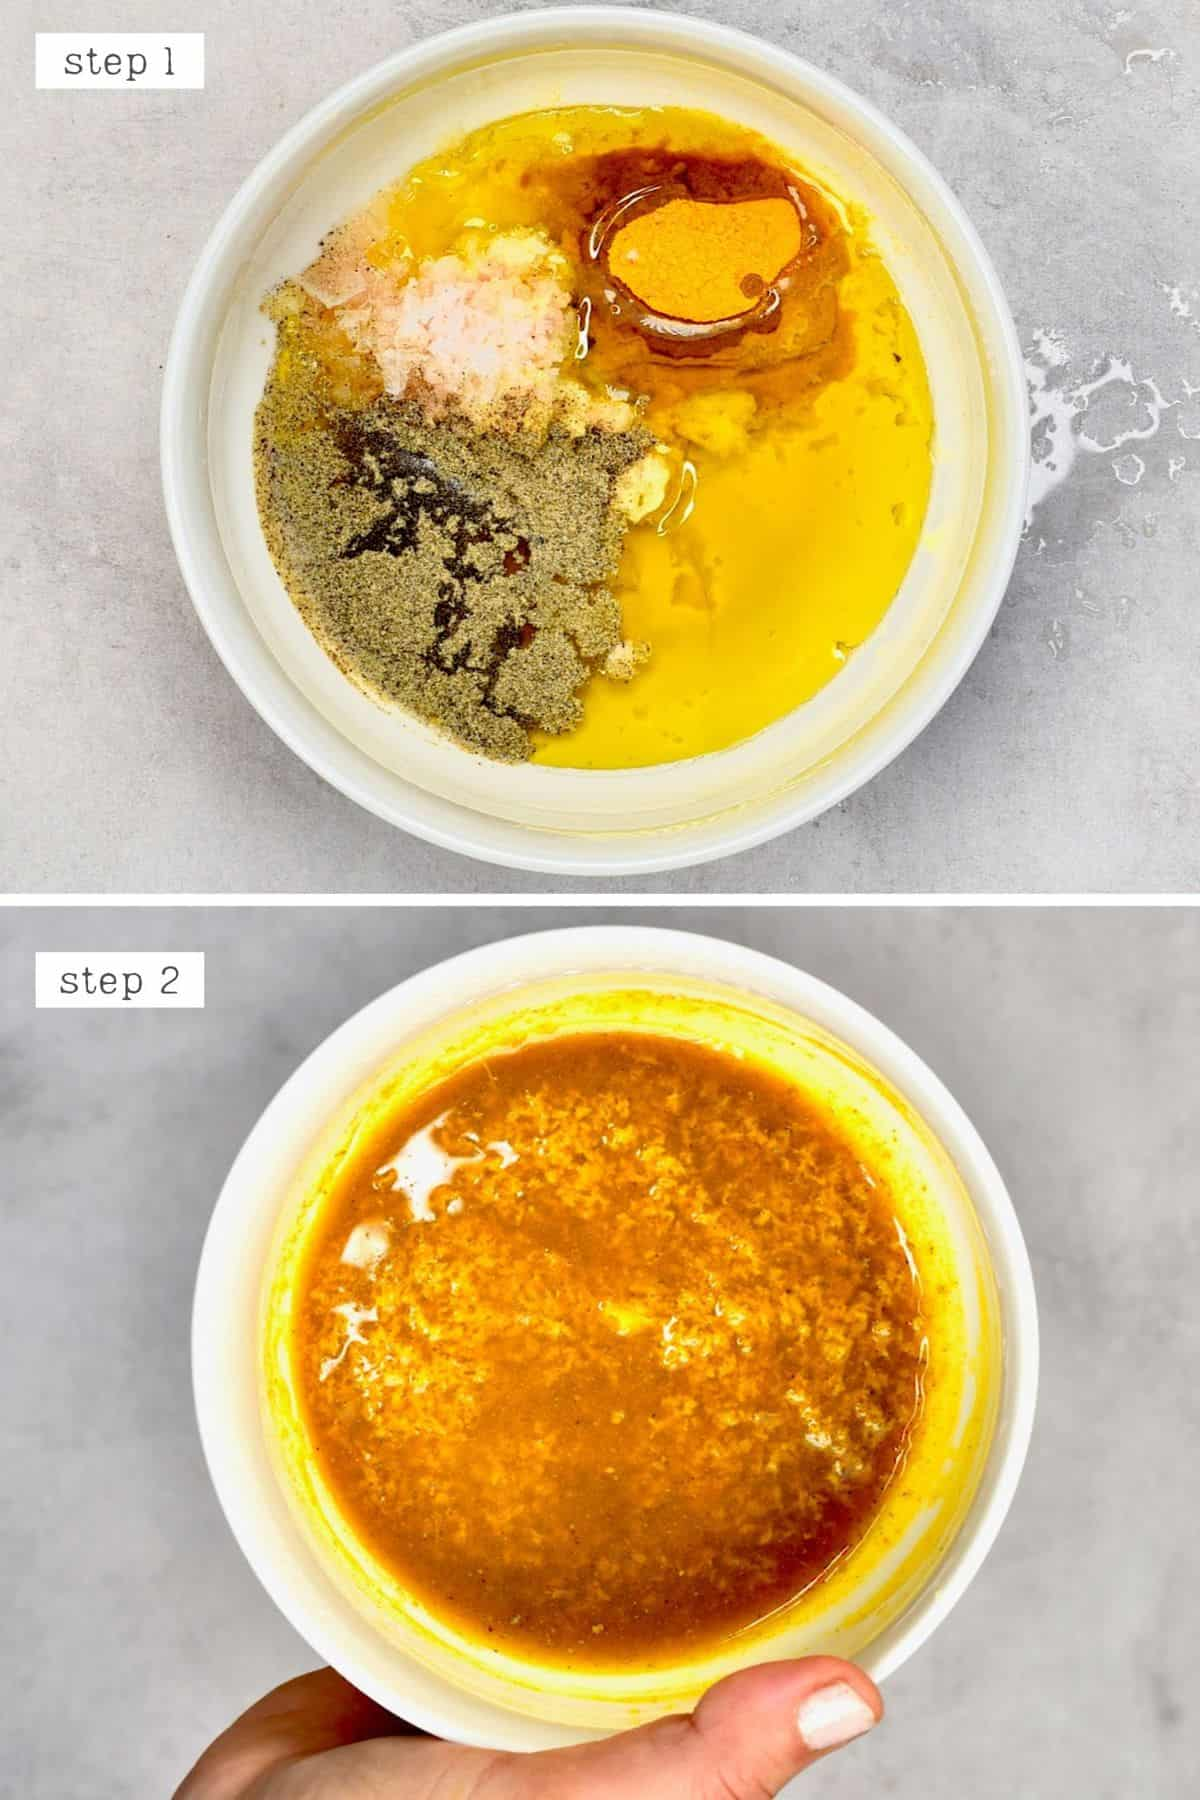 Steps for mixing turmeric spices and oil